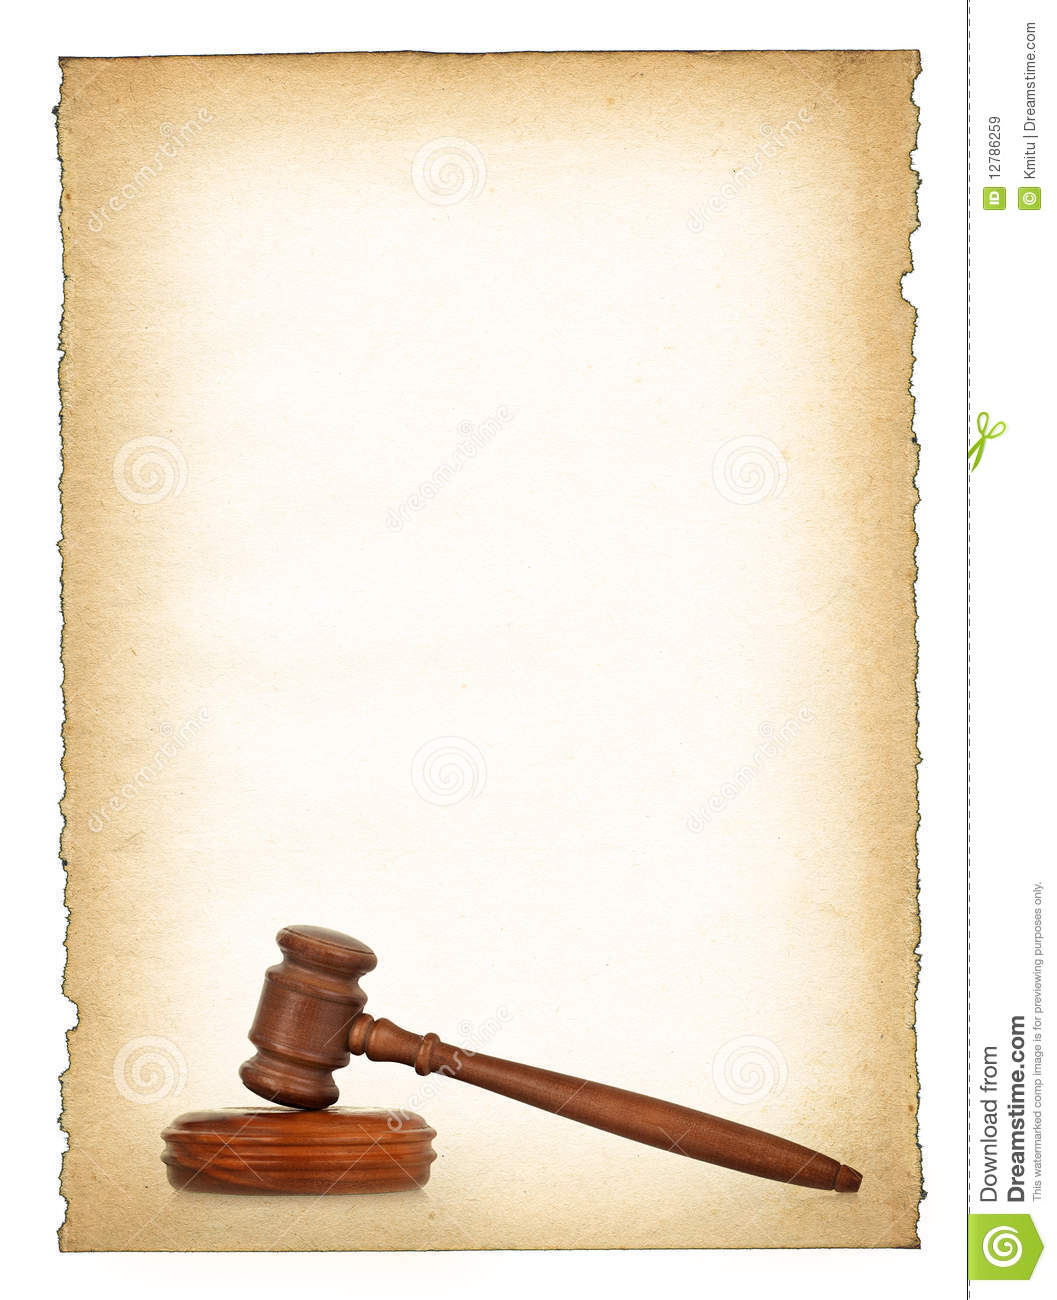 Wooden Gavel Against Old Dirty Paper Background Royalty